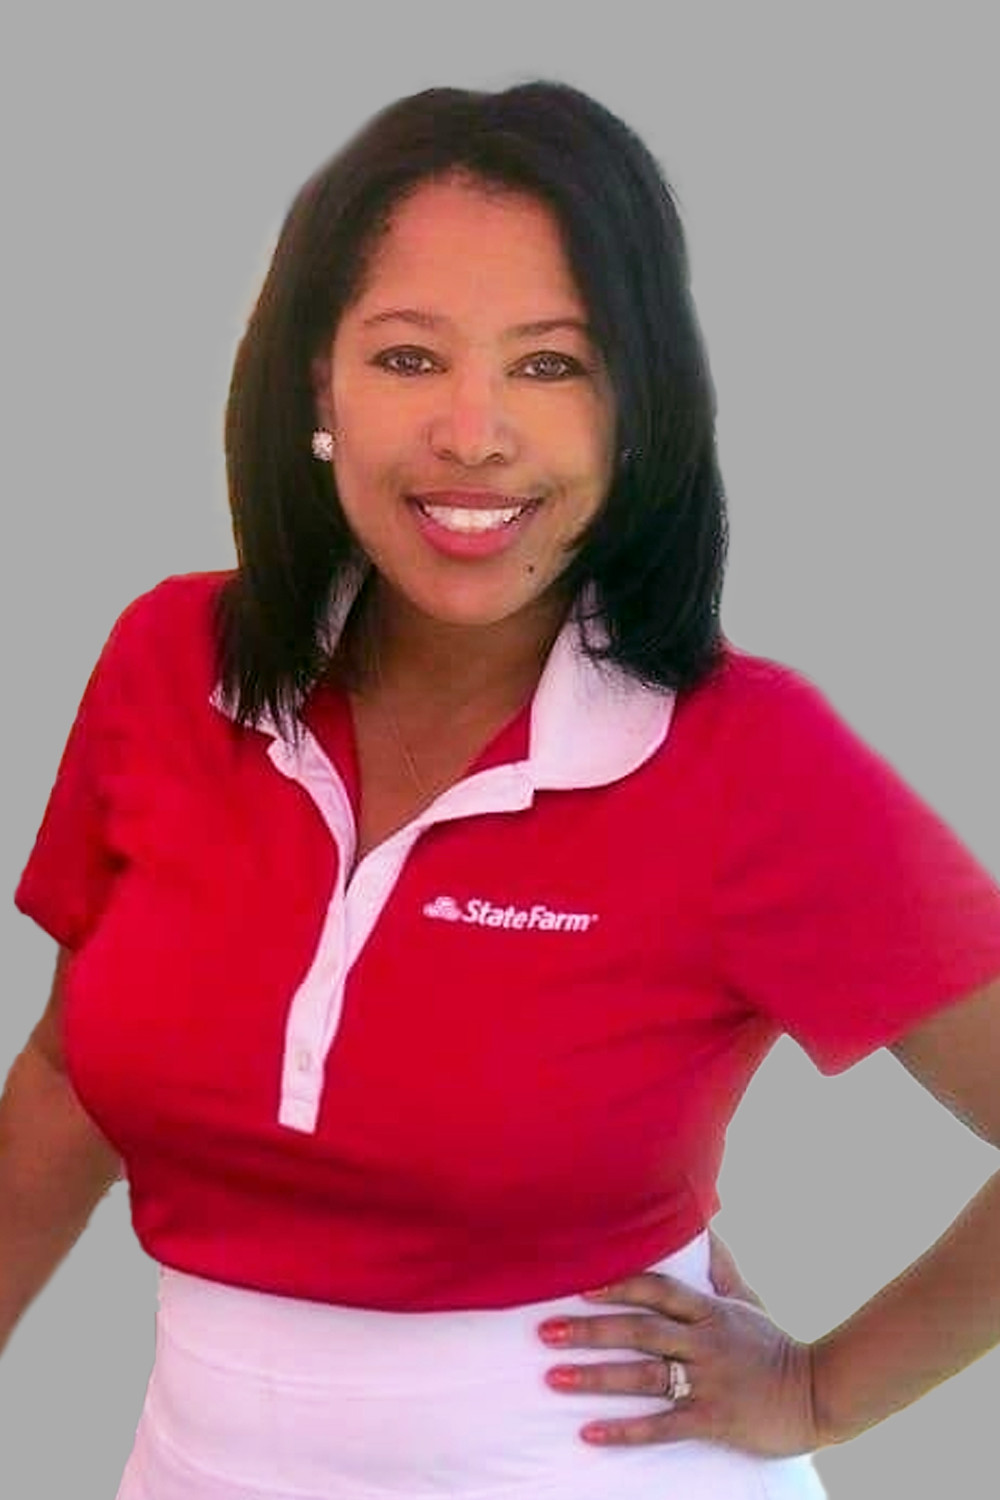 Christina Reynolds - State Farm Agent Illinois & Missouri